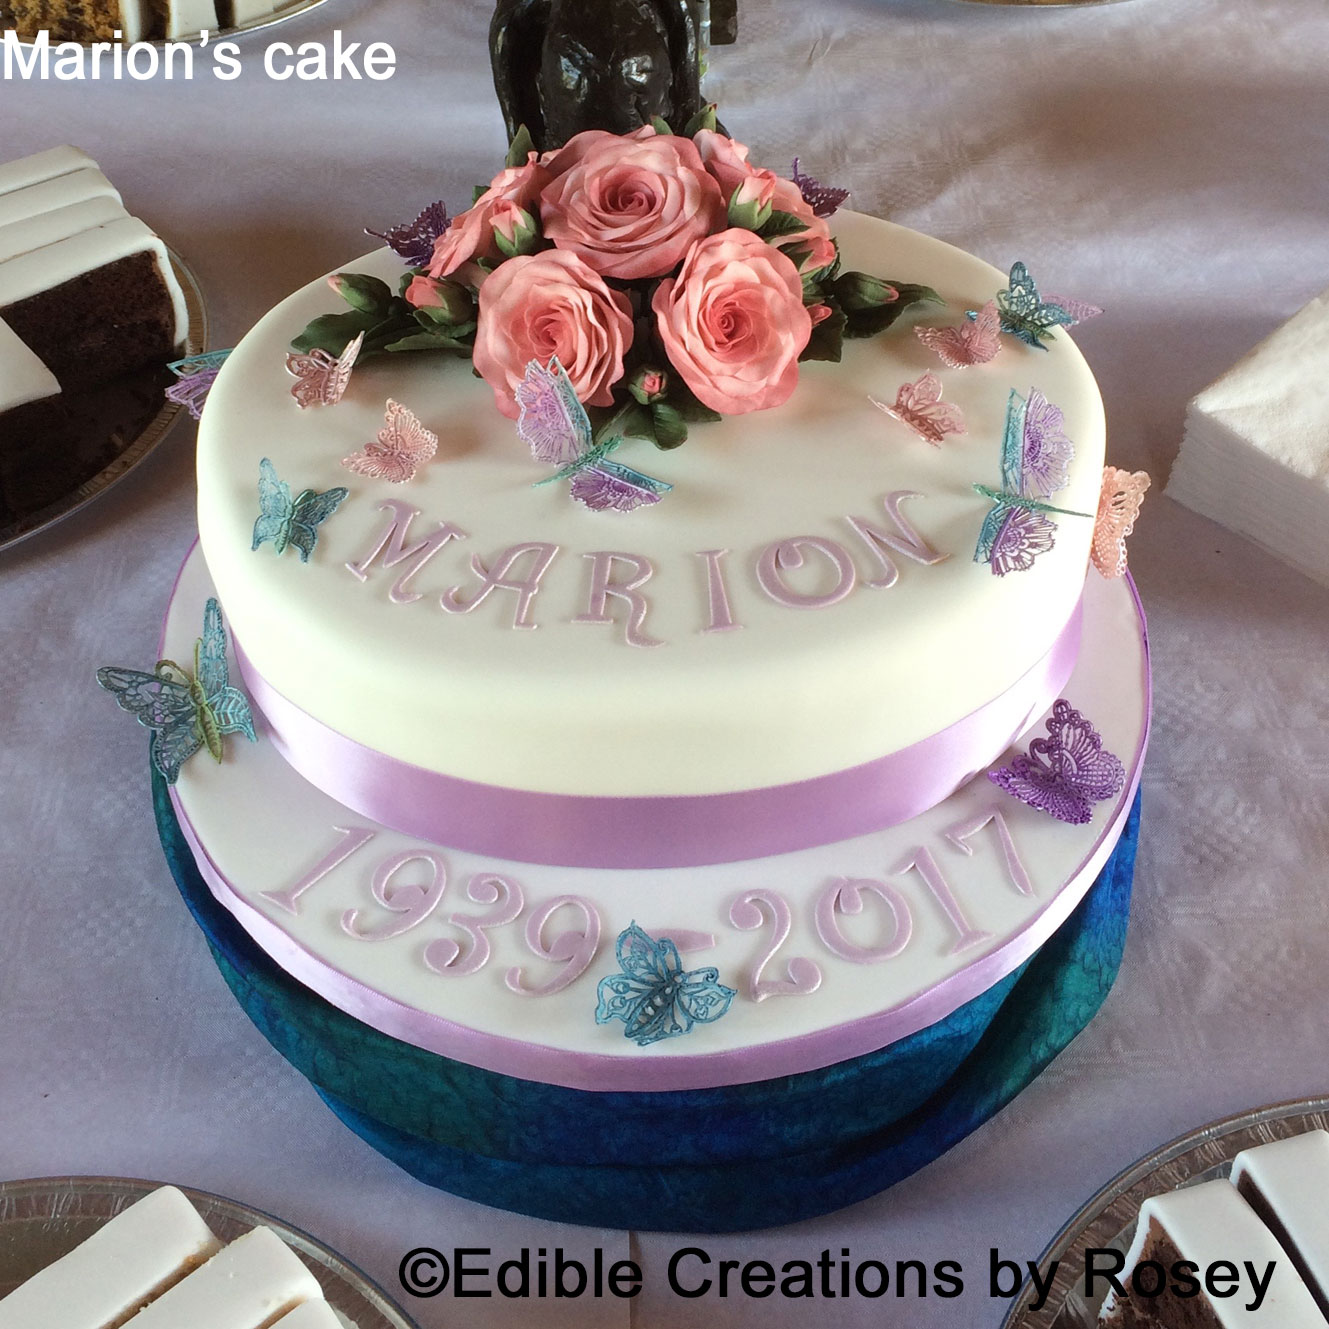 Marion's Cake